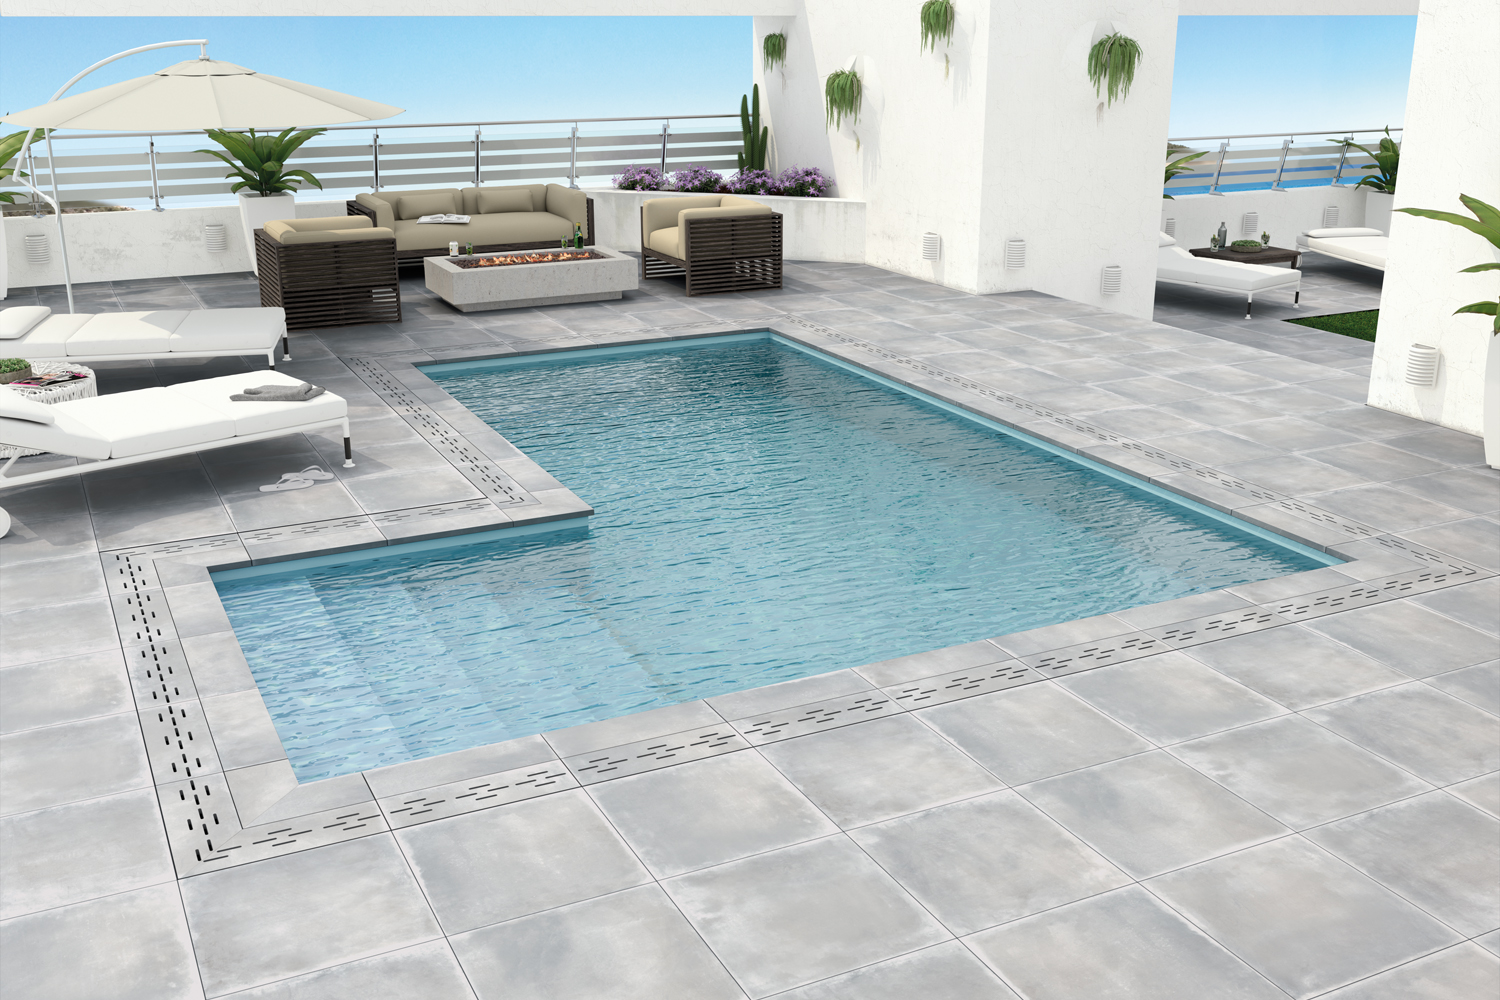 Carrelage ext rieur 20 mm d paisseur effet pierre ou for Piscine jacou